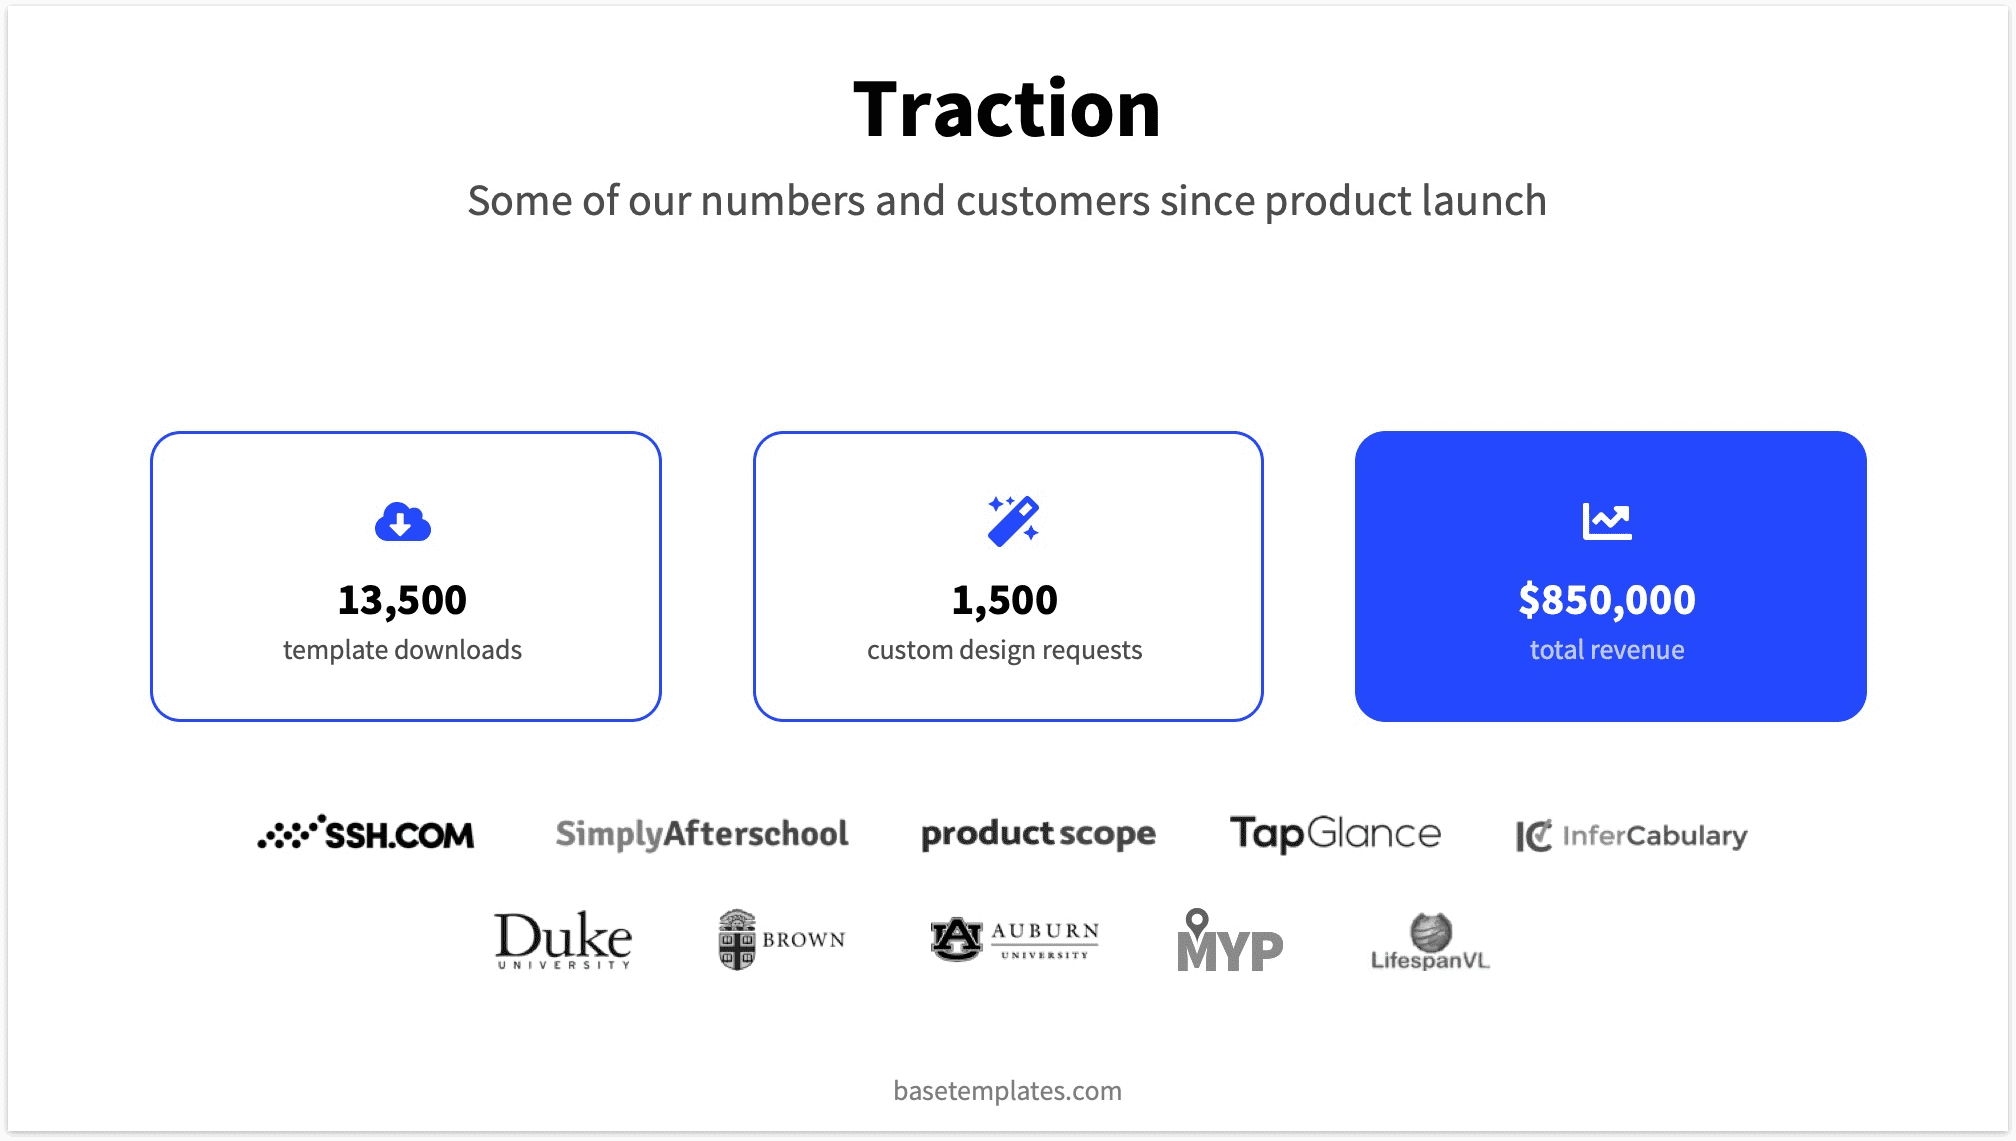 Traction slide including three key facts and a showcase of already established partnerships